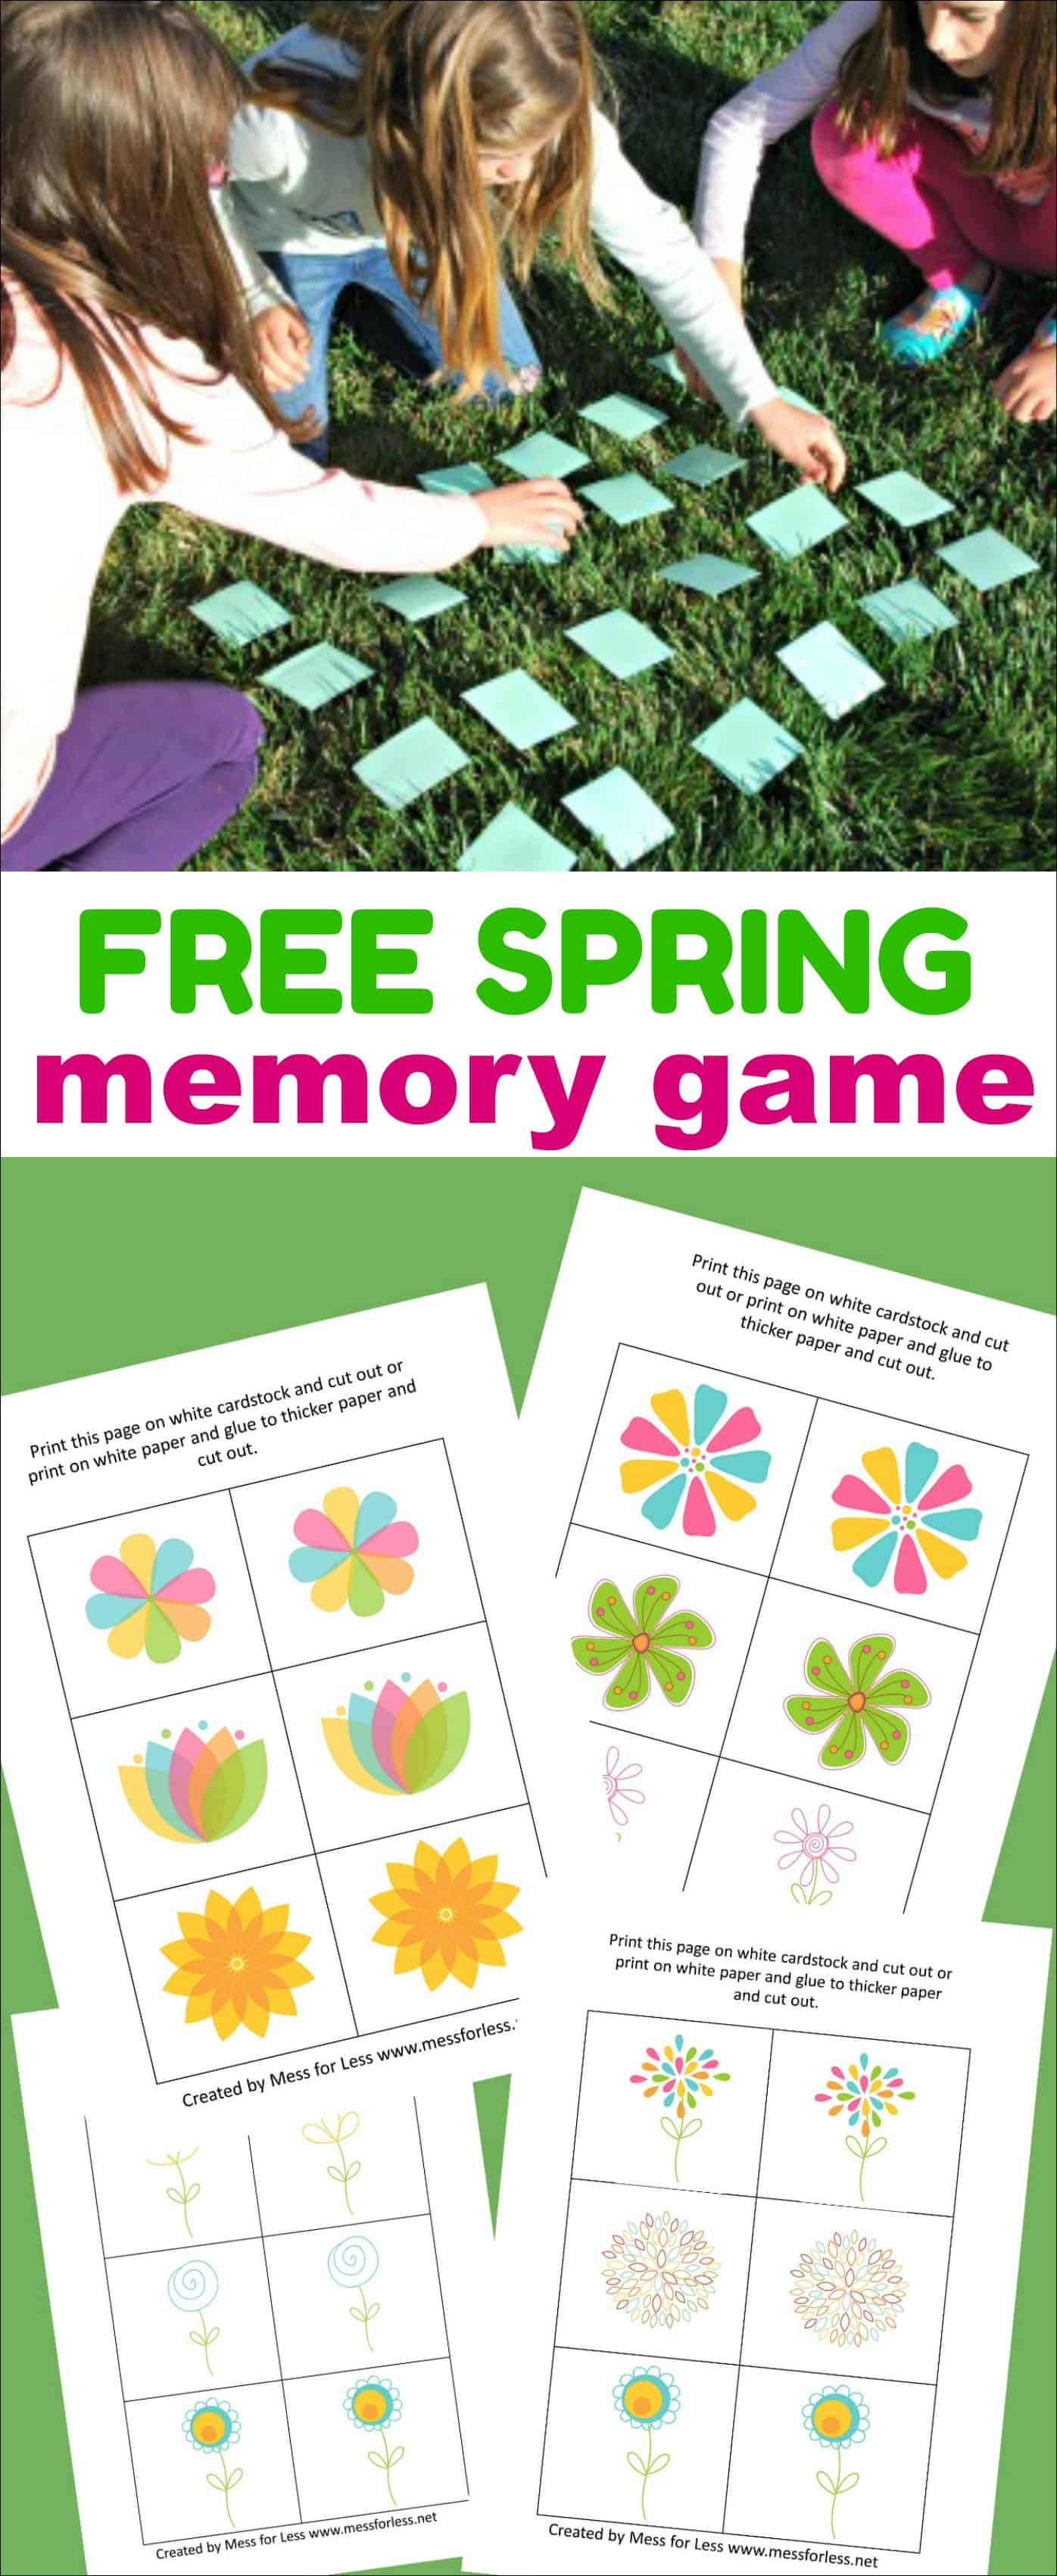 Download this free Spring Memory Game and enjoy it with your kids. Just print and play! #freeprintables #memorygame #springactivities